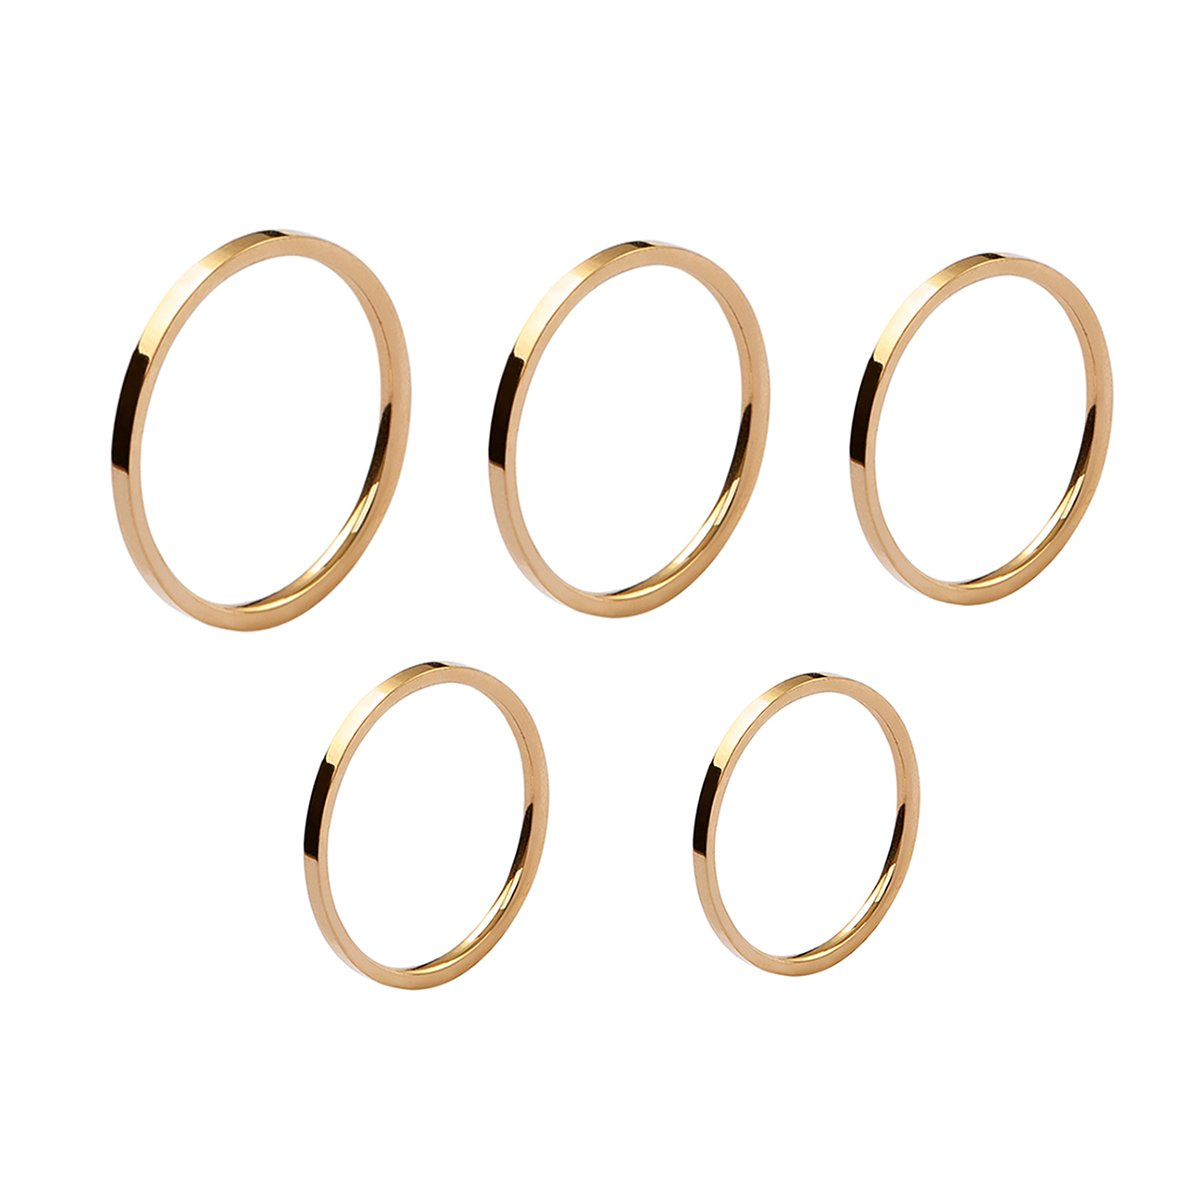 Velsinity Gold Stackable Rings Pack of 5 Joint Knuckle Rings Simple Round Circles